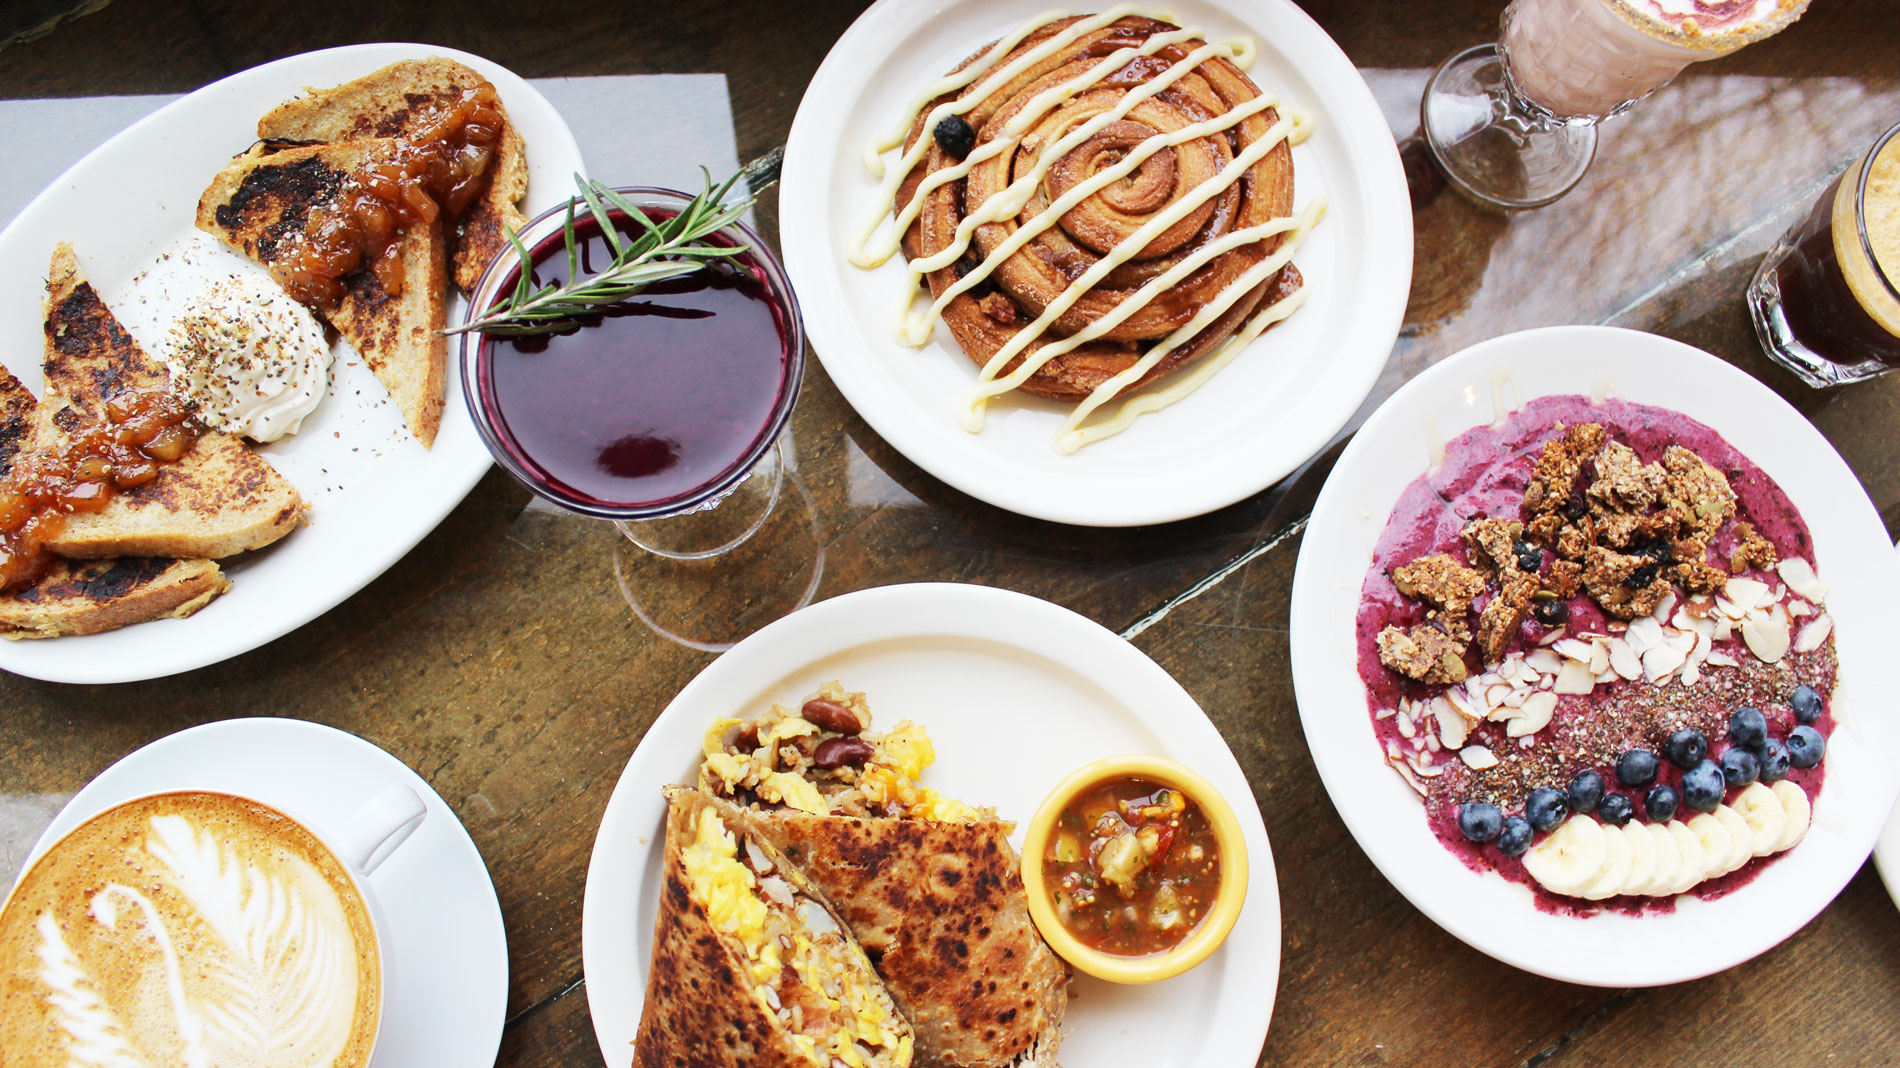 breakfast dishes and cocktails at kitchen house coffee's new location in south city